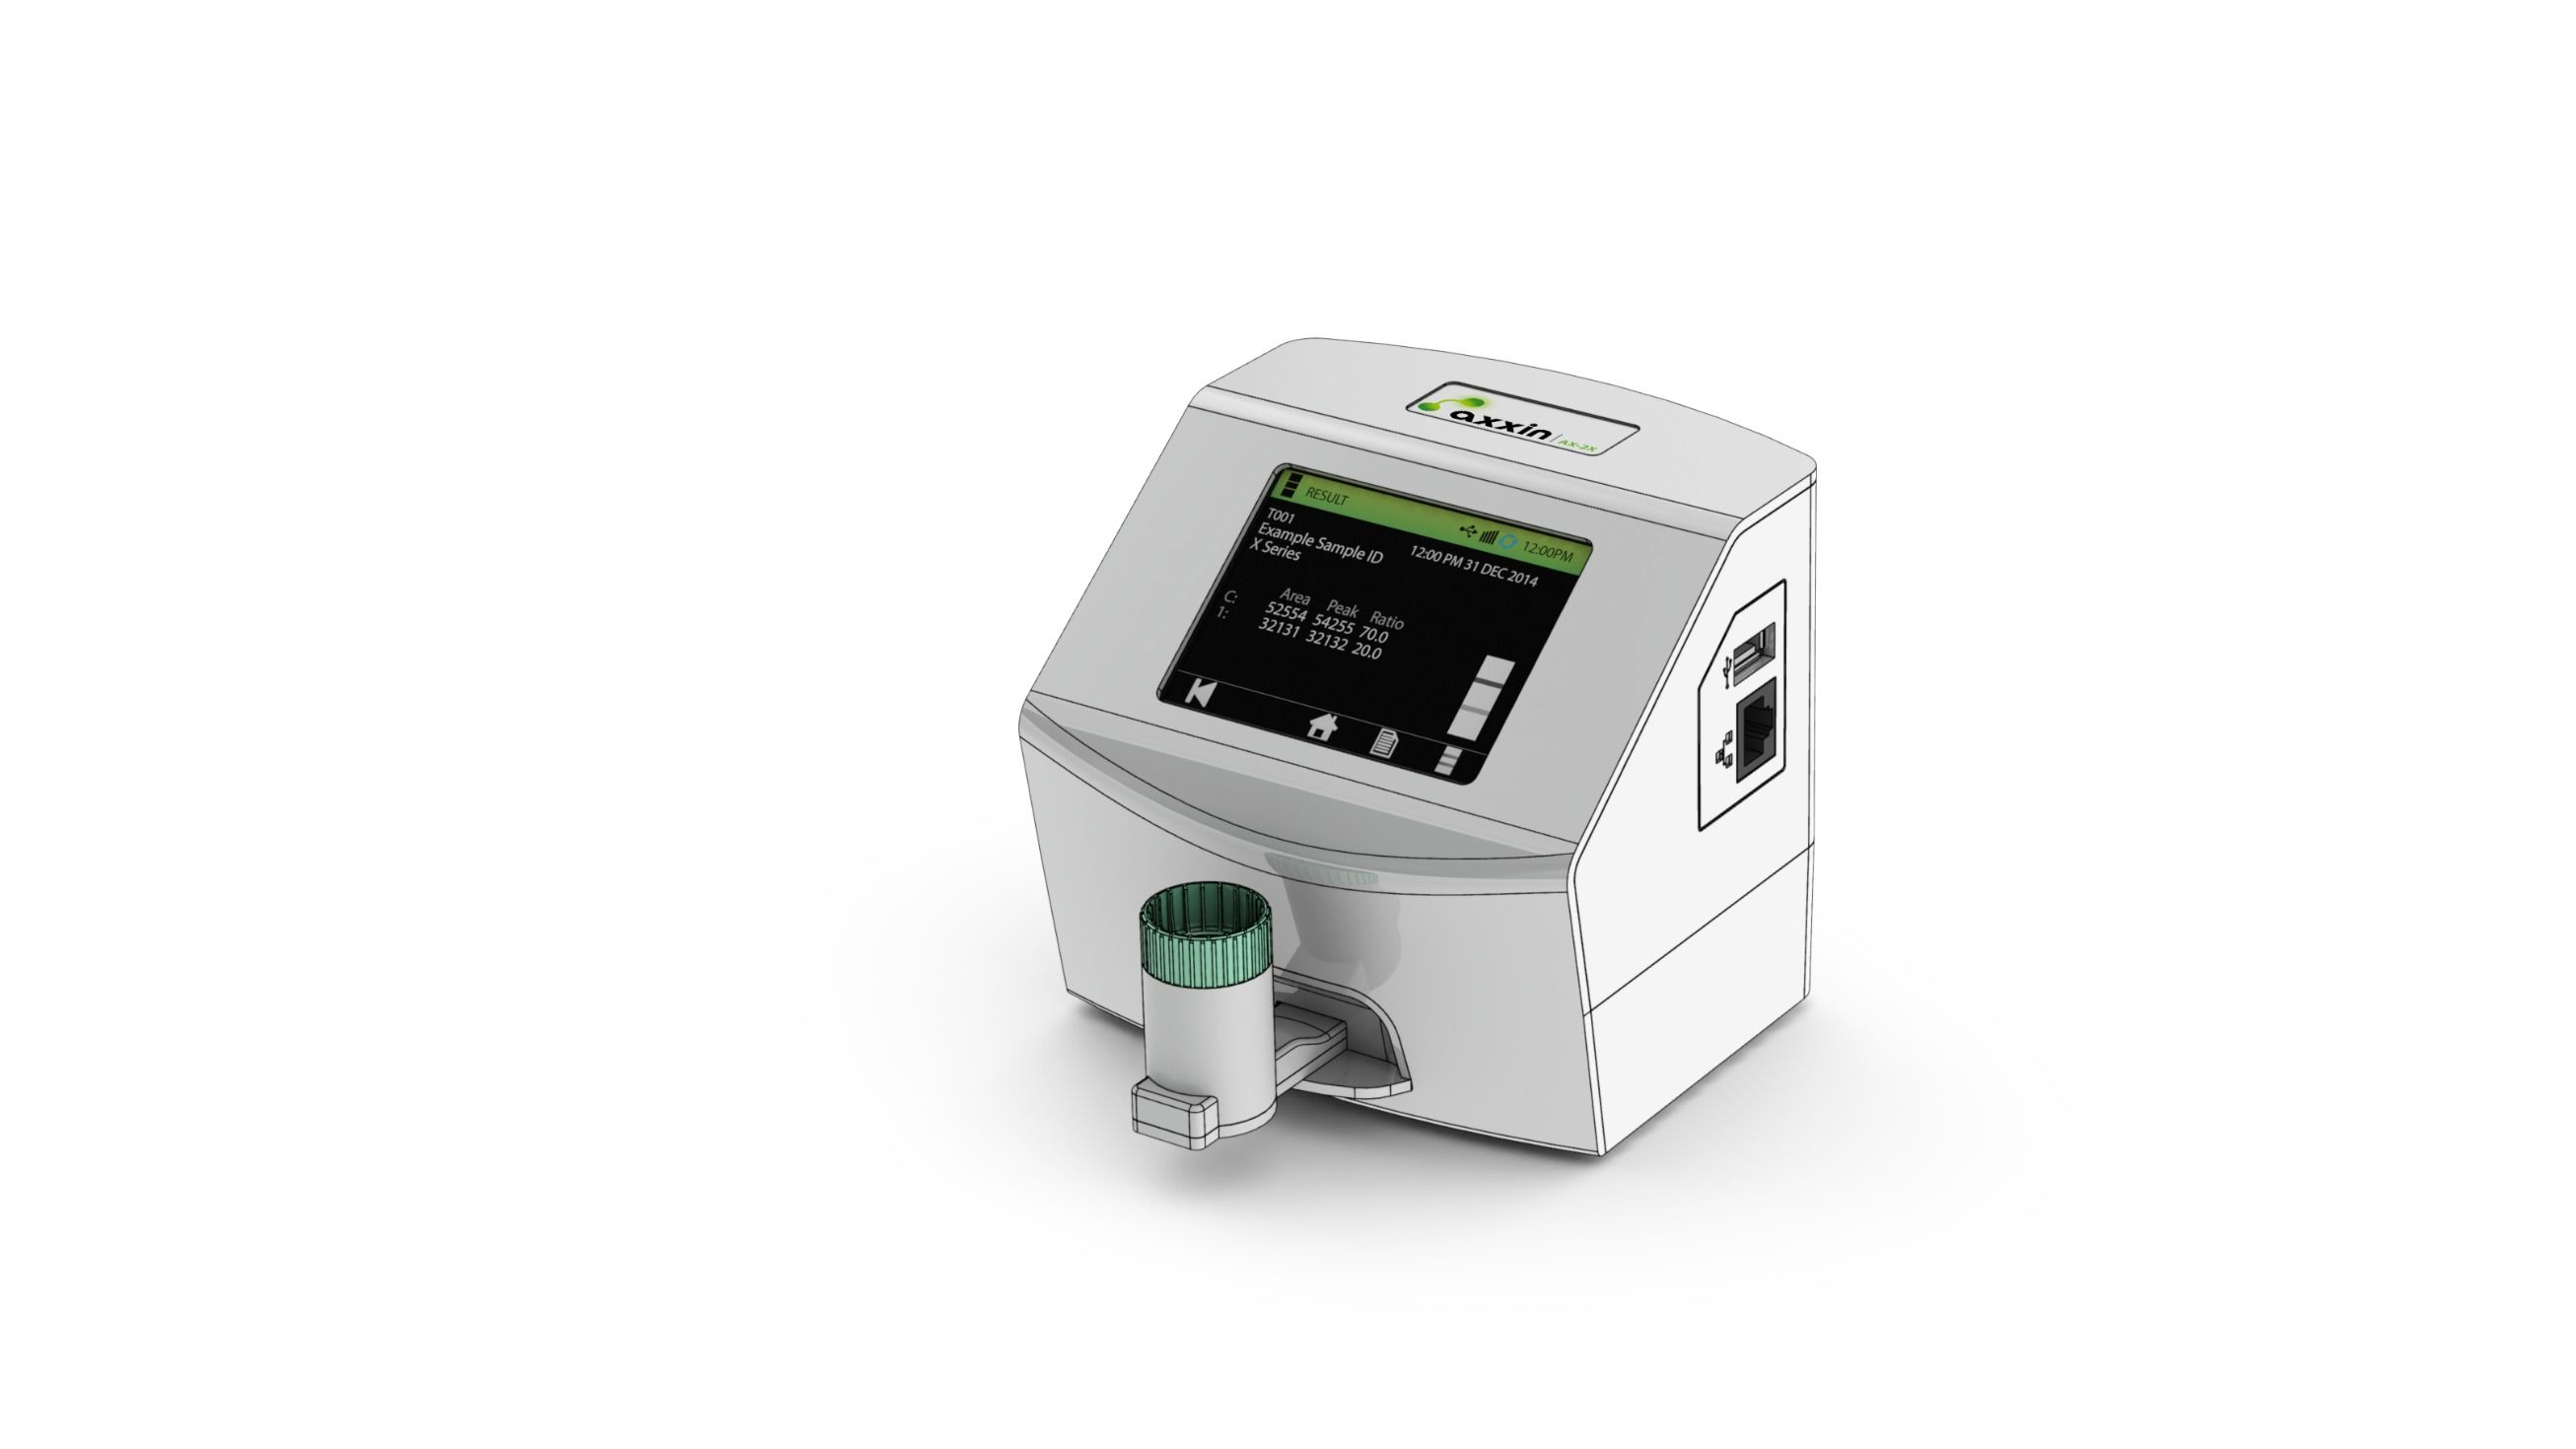 Molecular NatFlow Instrument